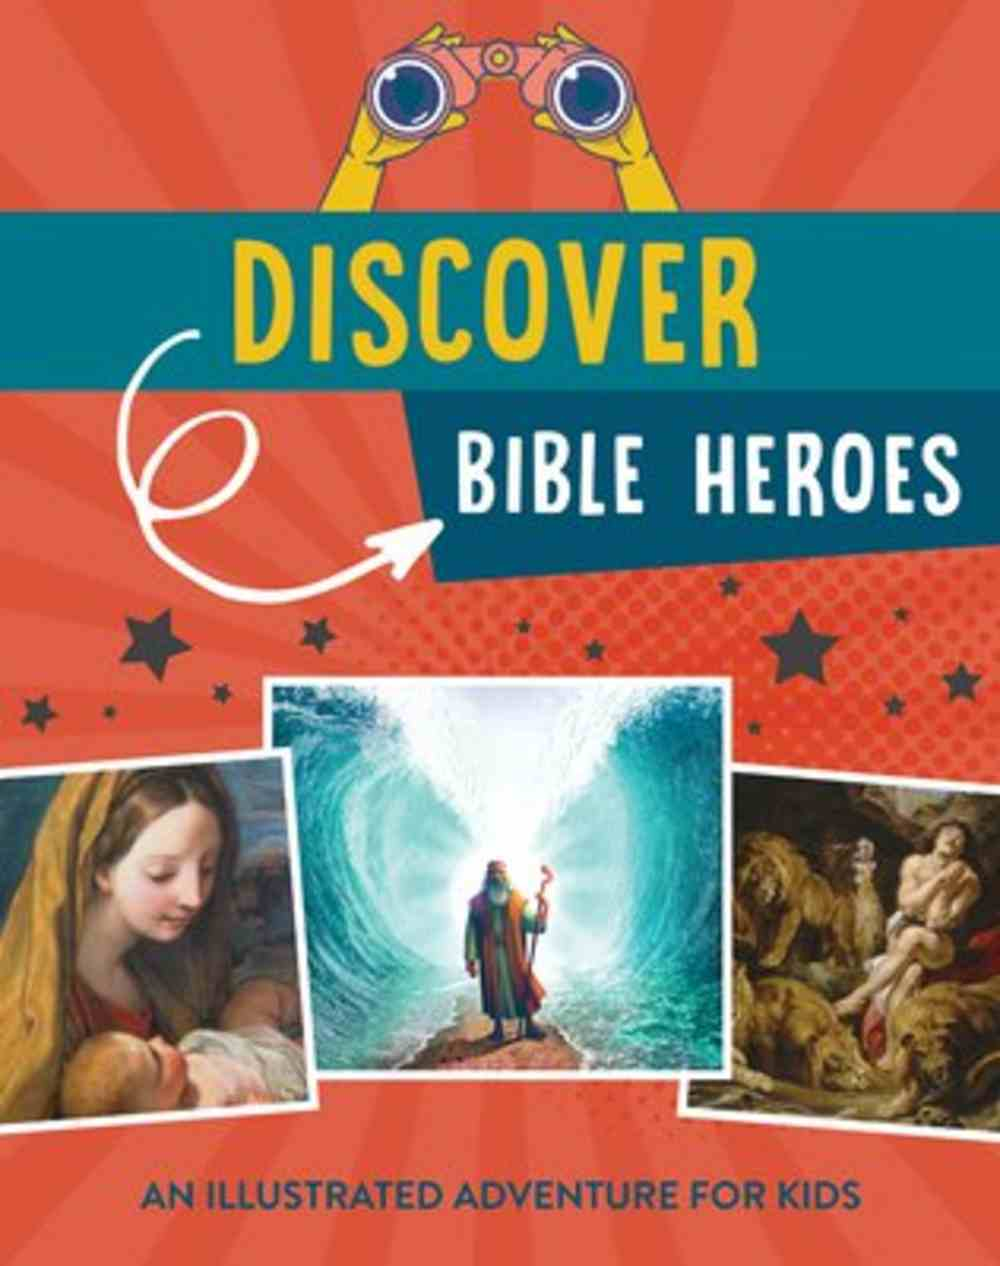 Discover Bible Heroes: An Illustrated Adventure For Kids 8-12 Paperback